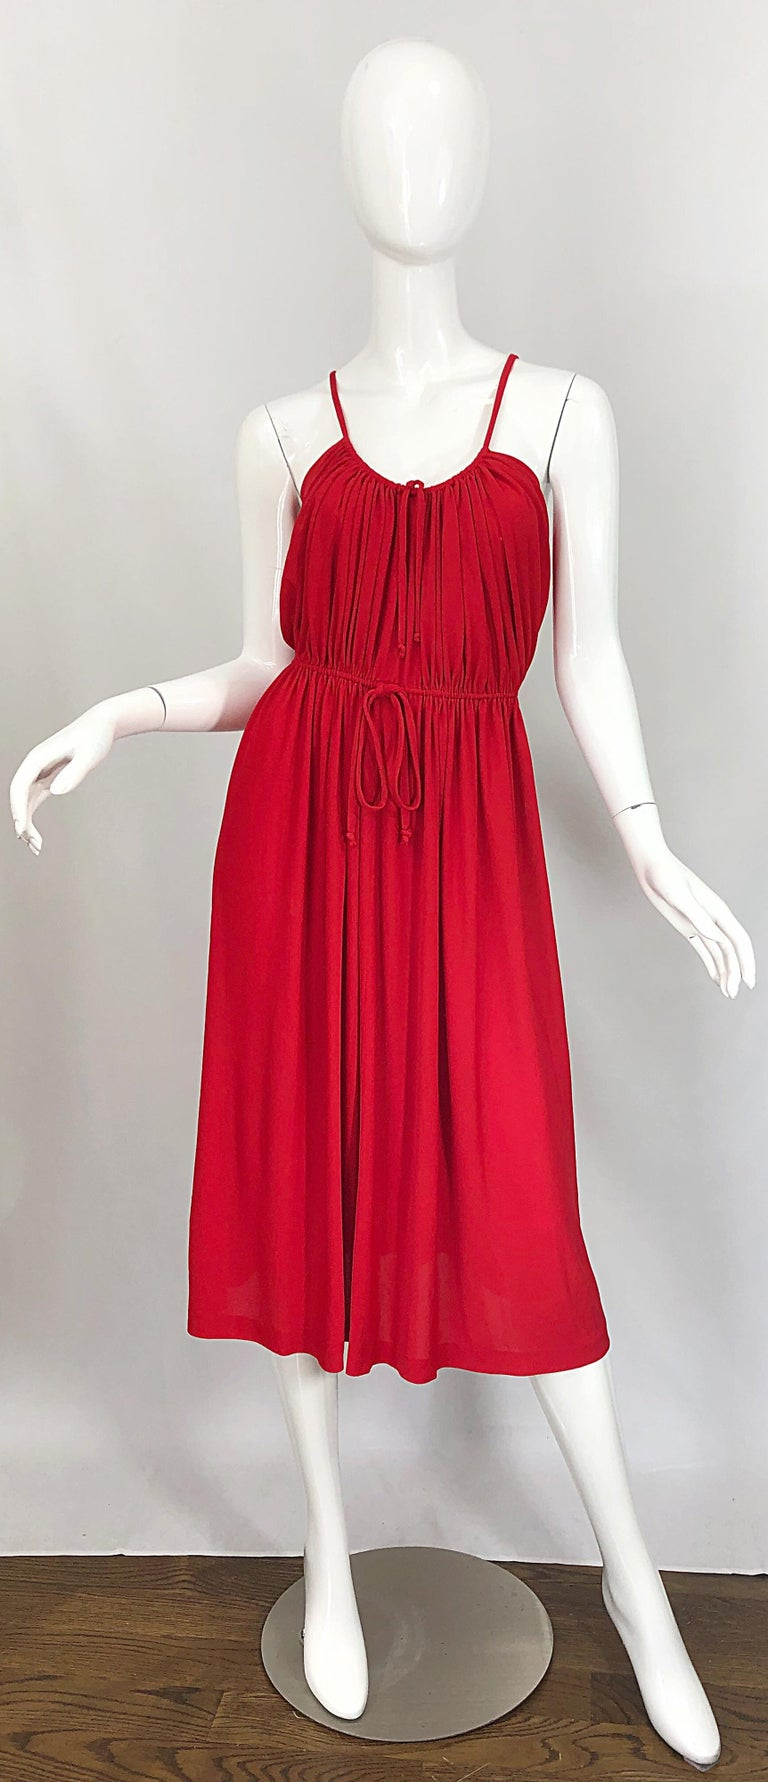 Chic 1970s LORIS AZZARO crimson red silk jersey Grecian Inspired spaghetti strap dress! Features flattering and forgiving draped bodice with ties at the bodice and waist to adjust for size. Avant Garde triangular back. Hidden metal zipper up the